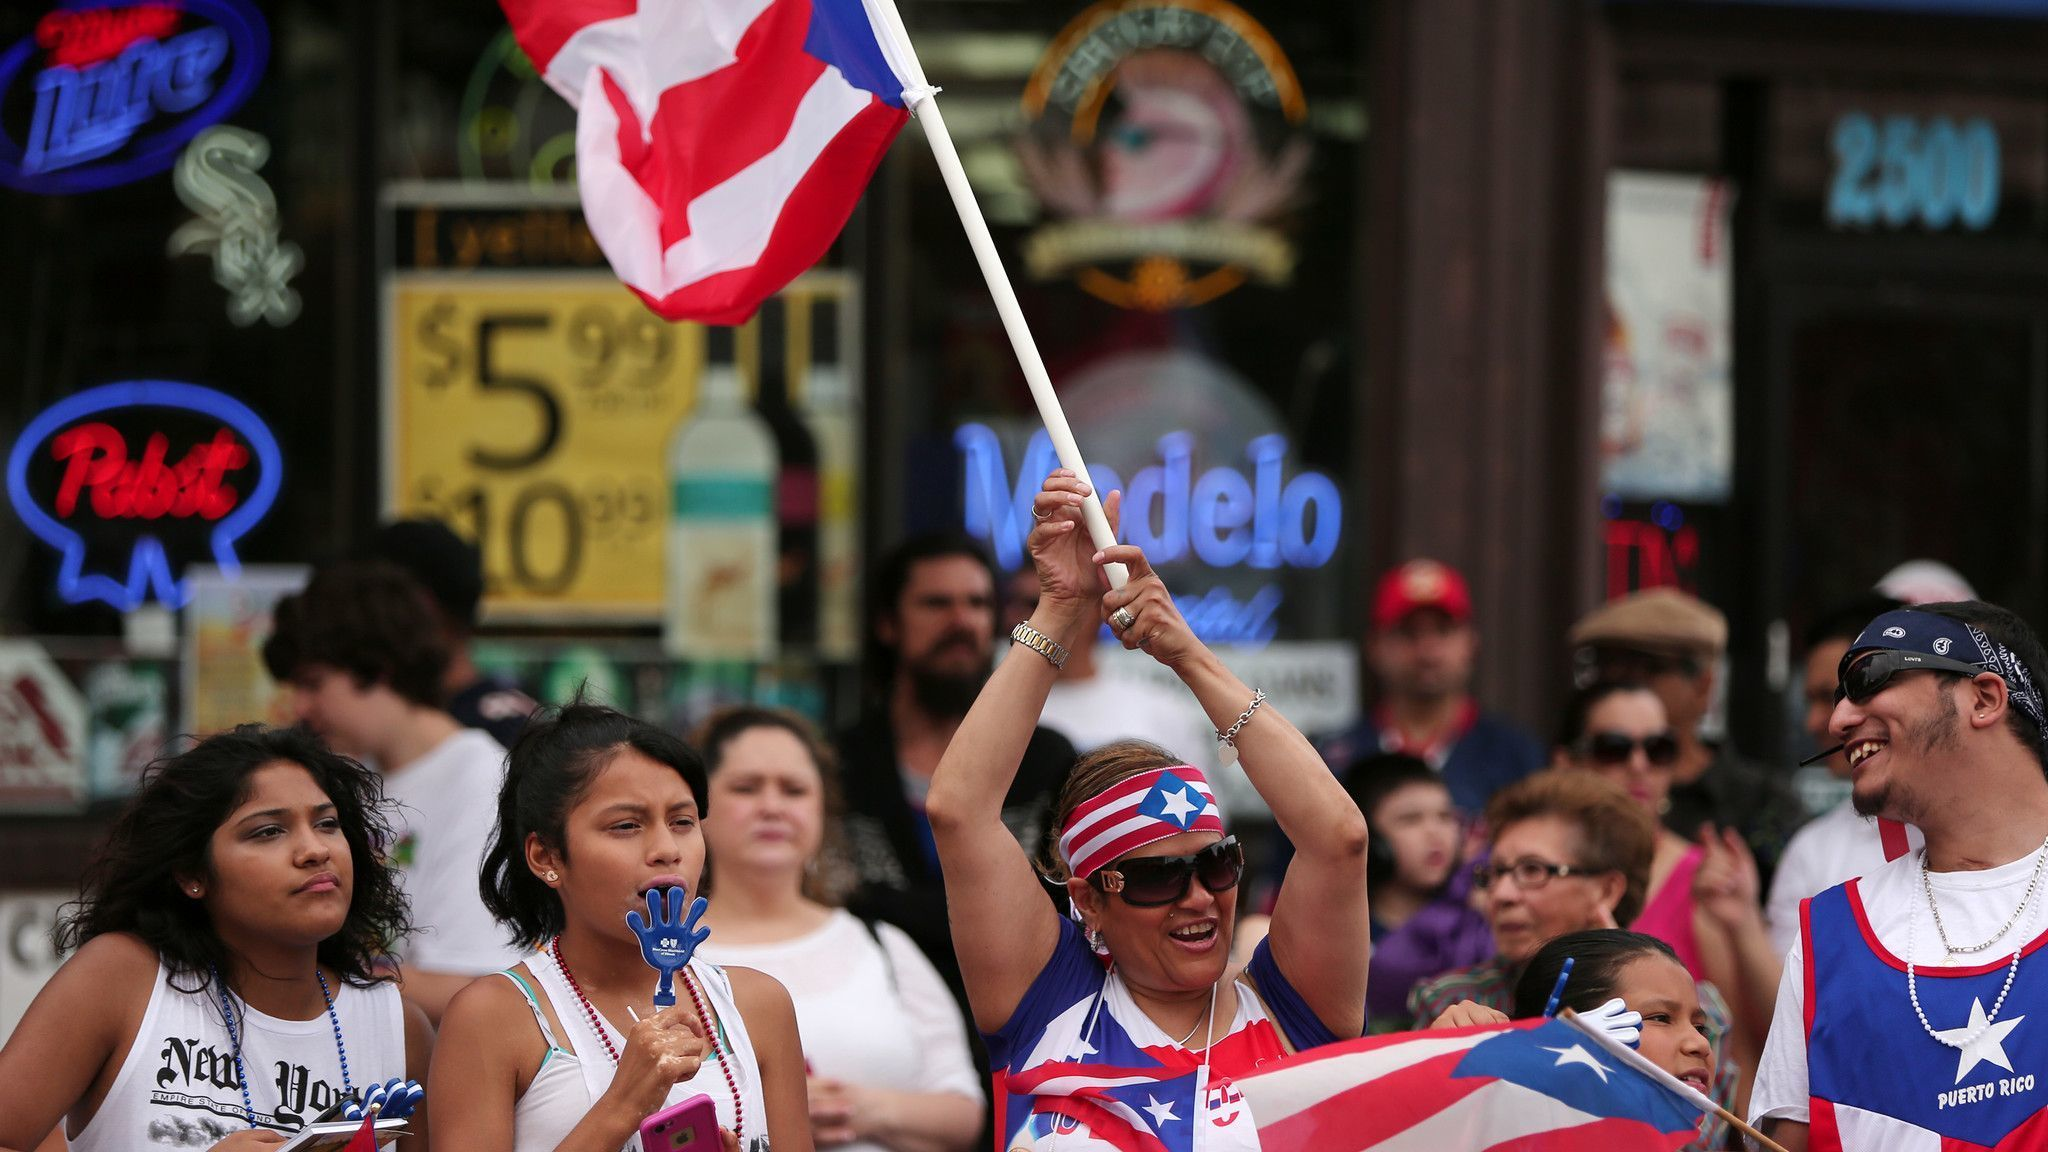 Things to do in Chicago this weekend: Puerto Rican parade, 'Pop-Pup' bar for dogs, Vampire Weekend, White Sox giveaways